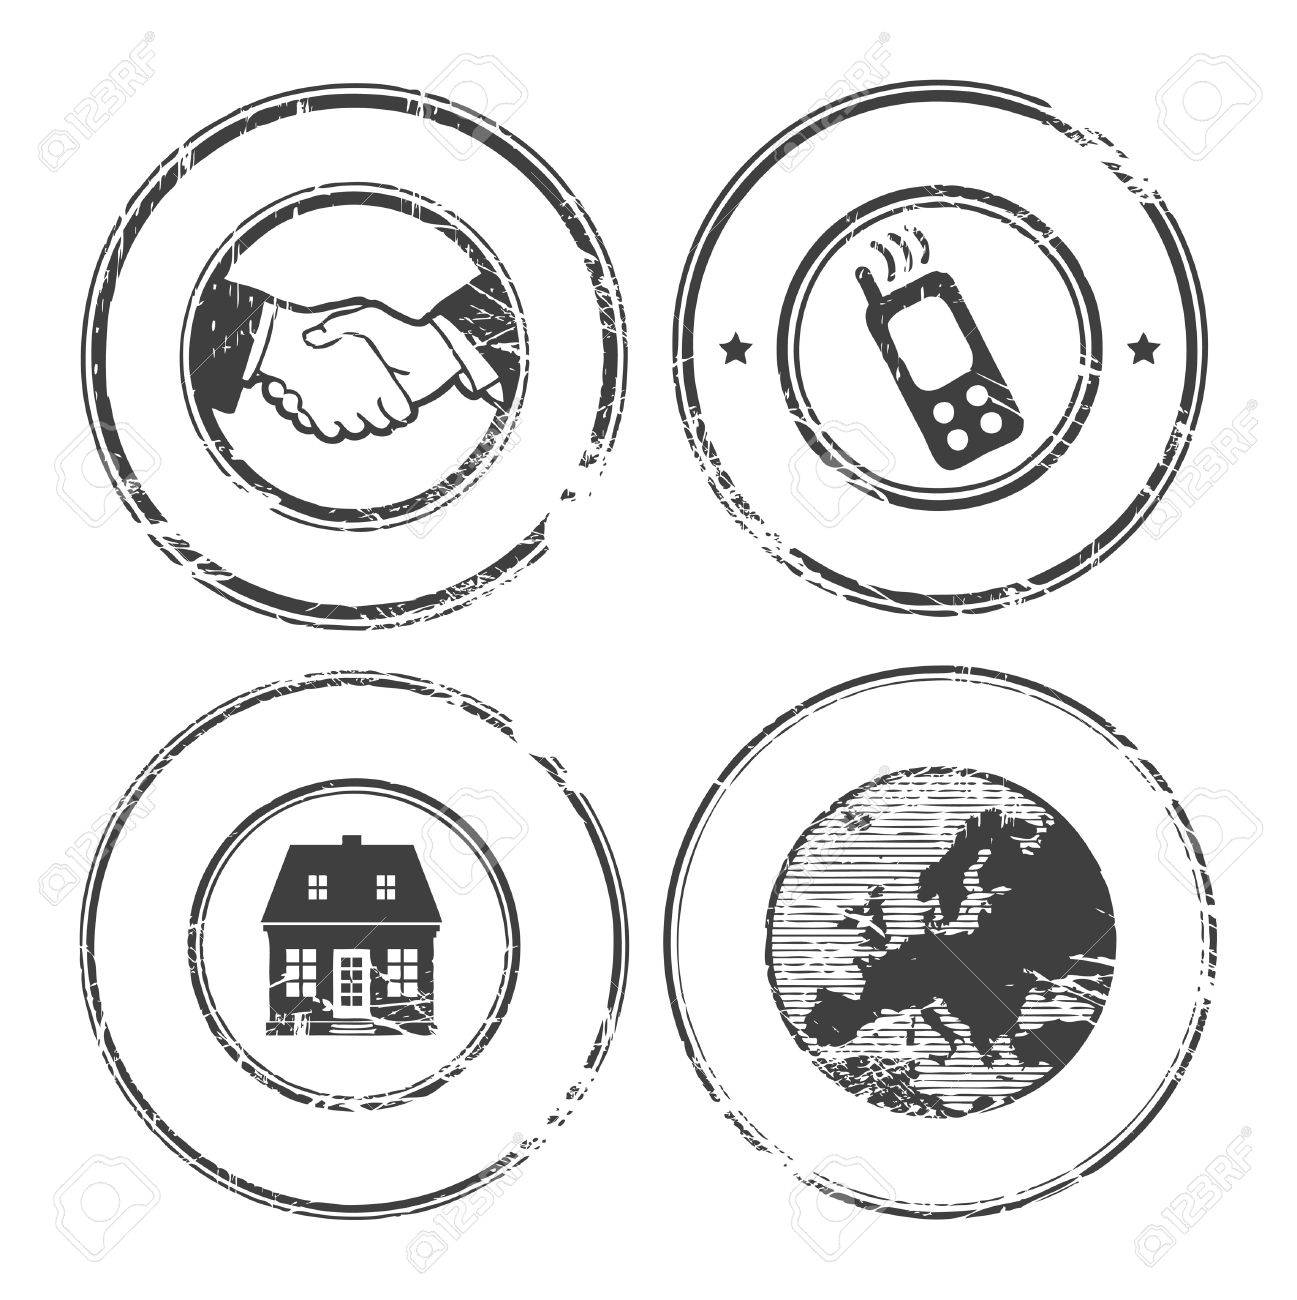 Abstract empty grunge rubber stamp set with space for text Stock Vector - 14540008